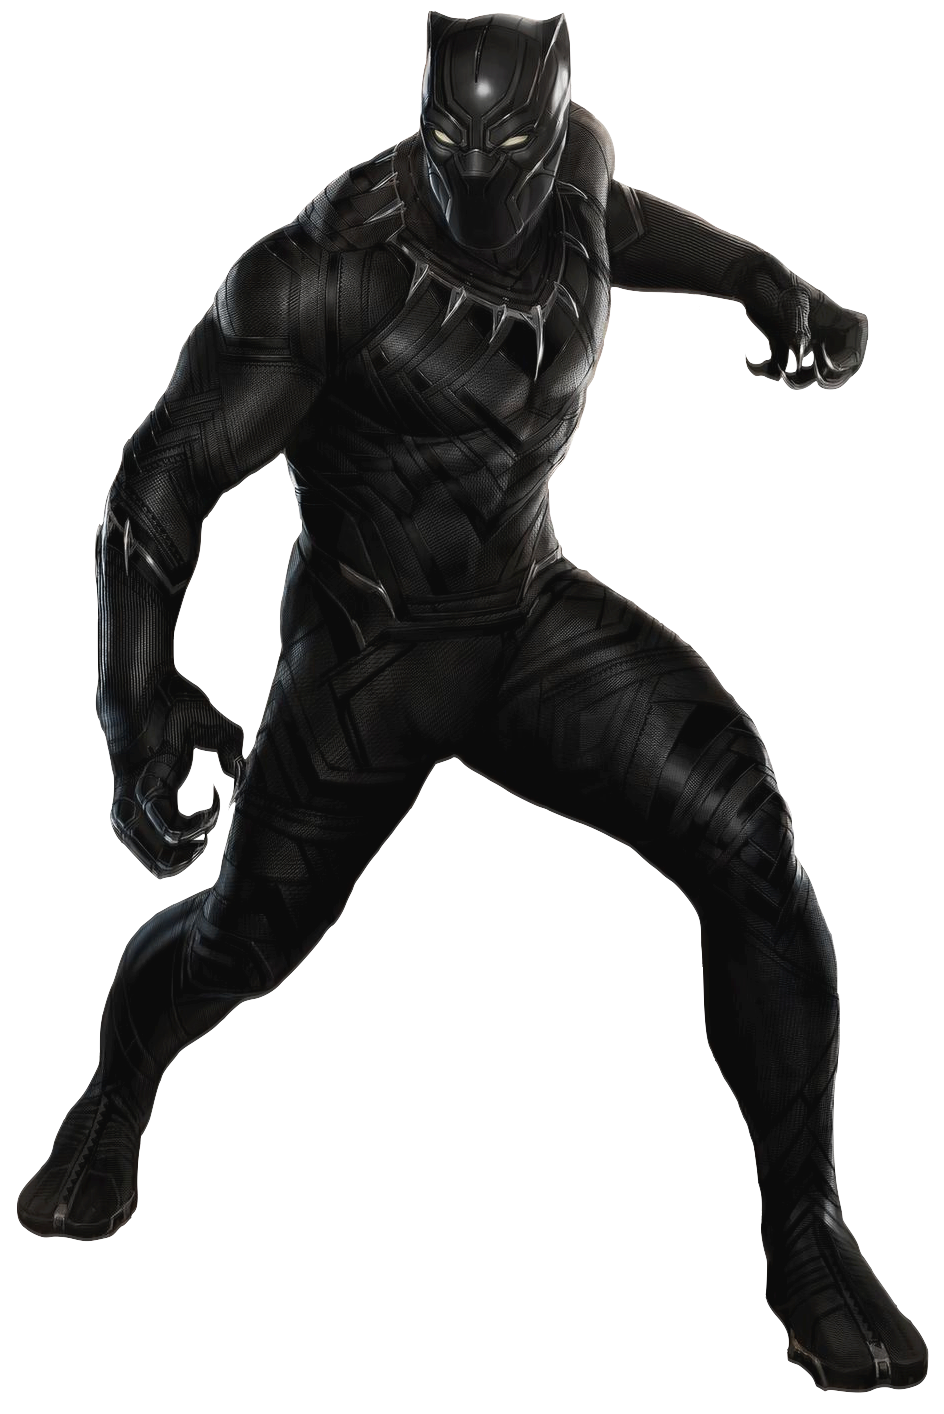 kevin feige offers new details on black panther role in captain rh pinterest com Avengers Black Panther Clip Art Cute Panther Clip Art